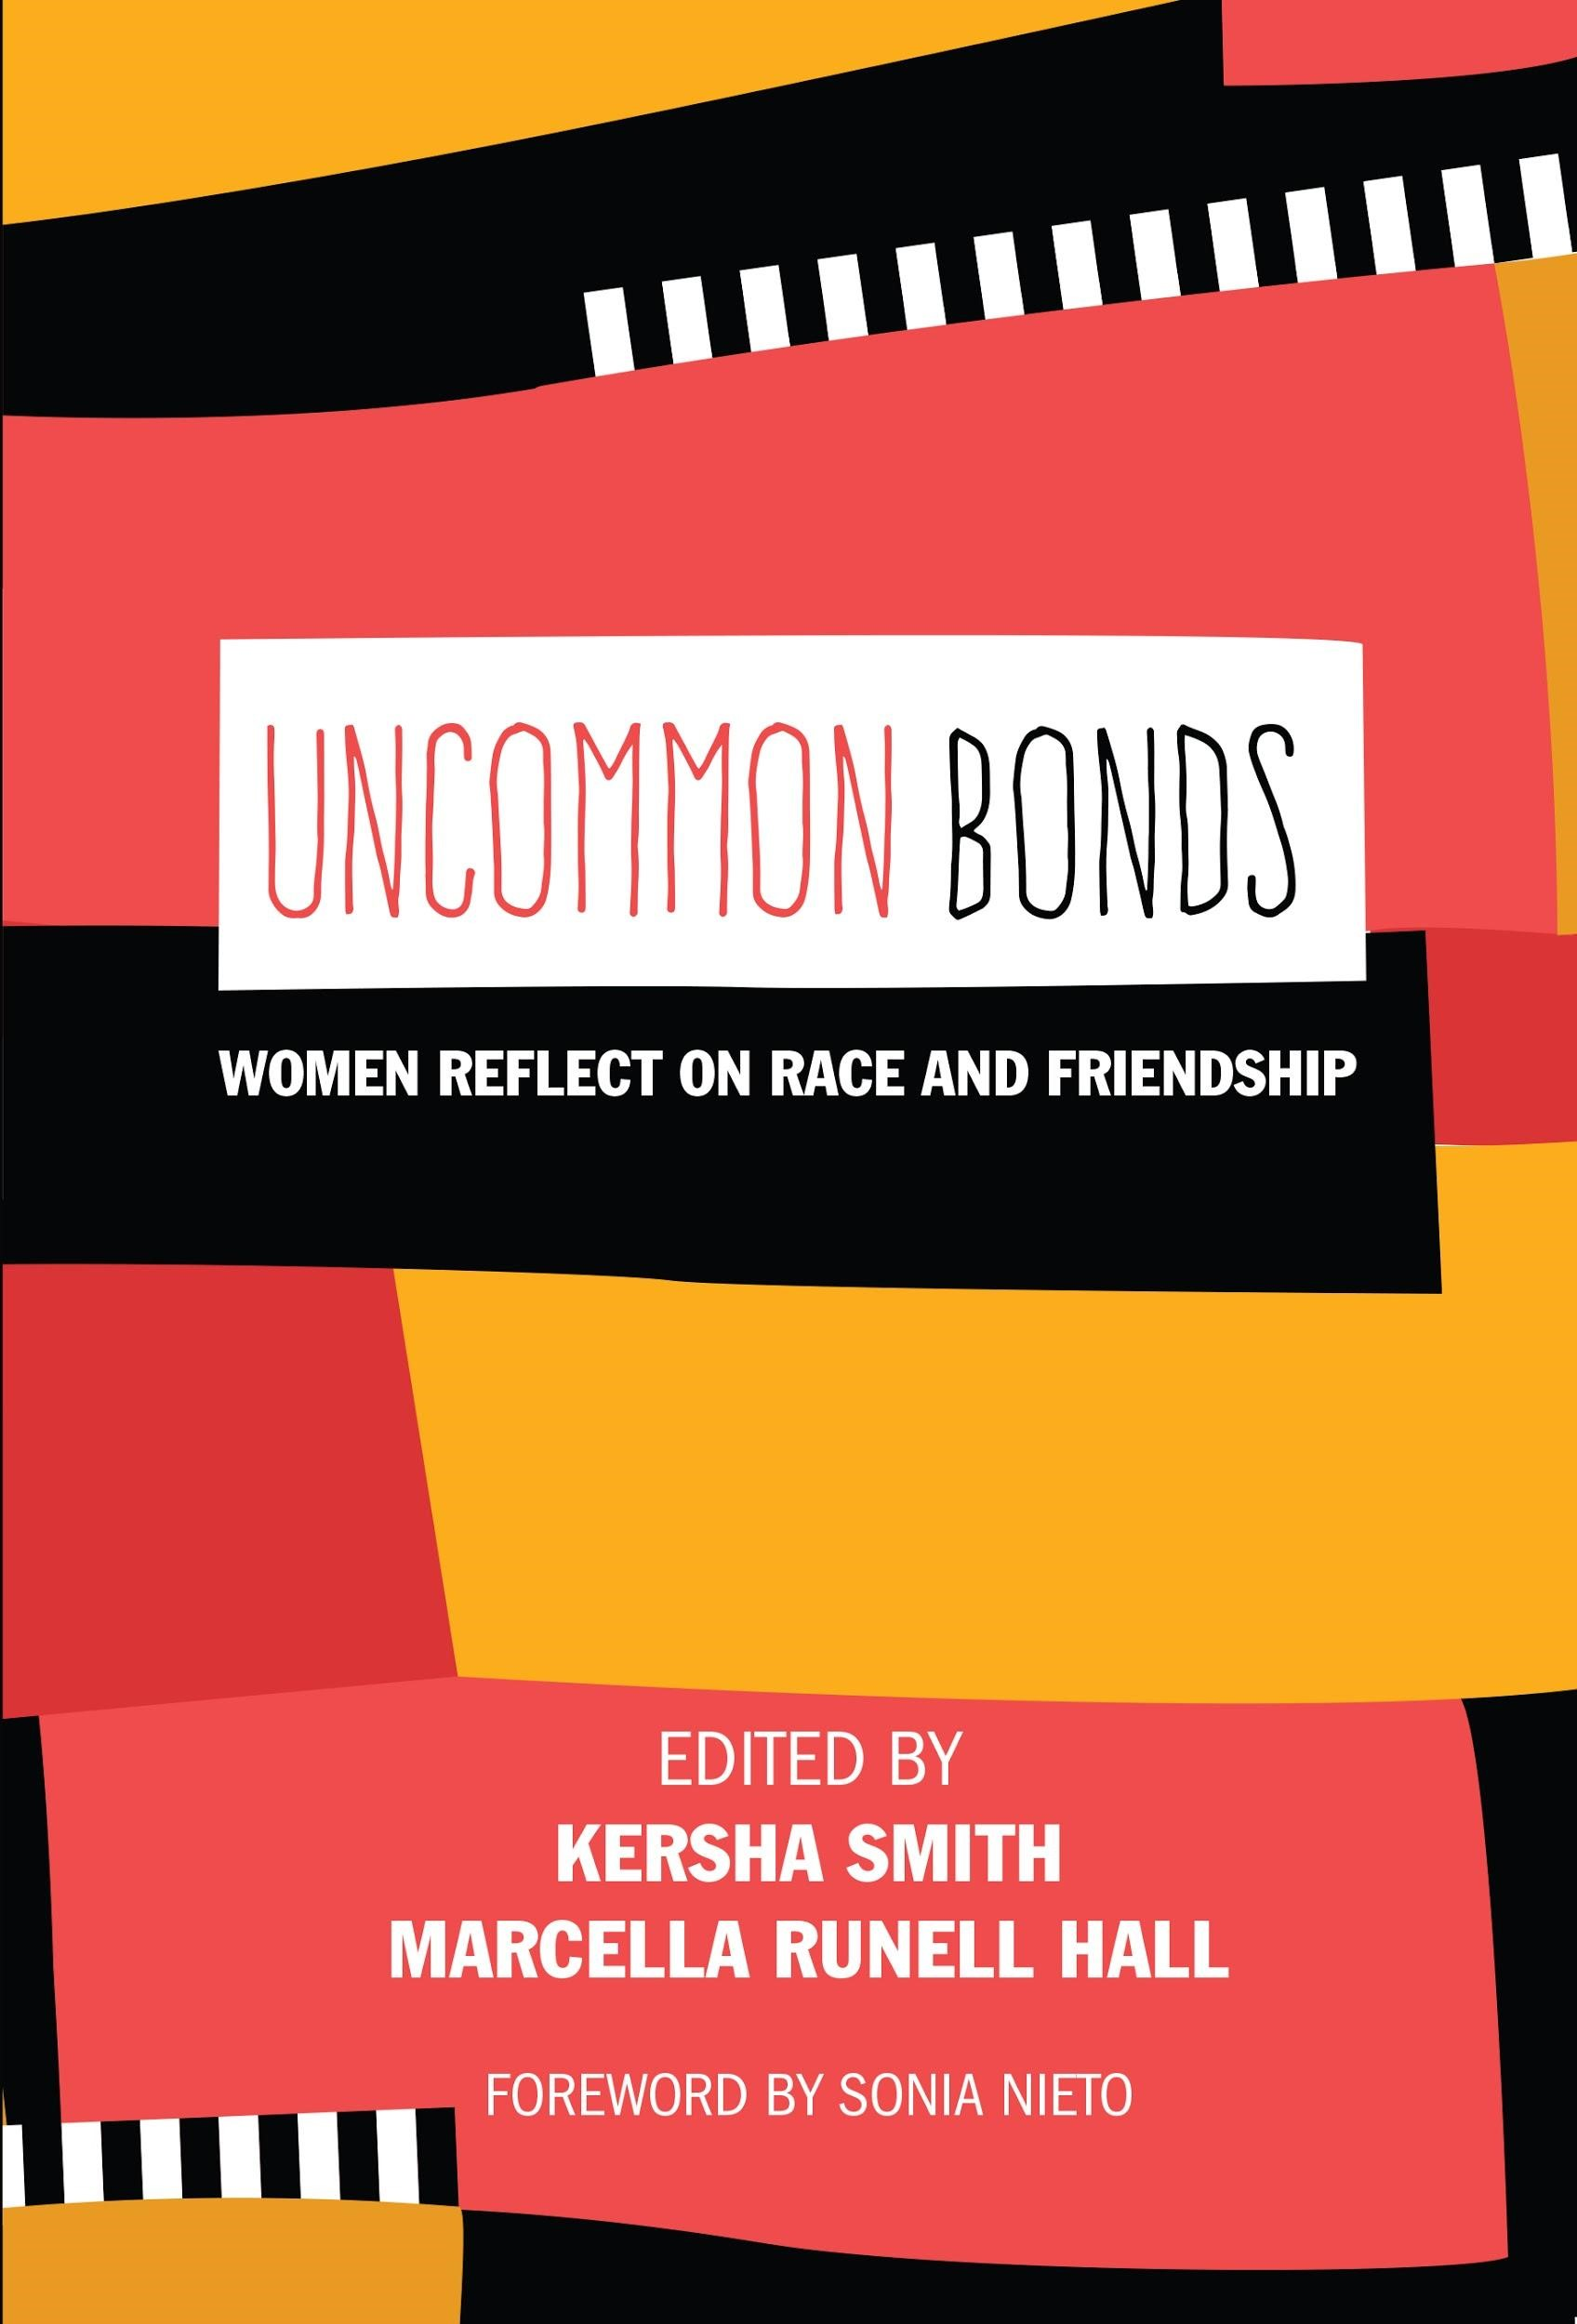 Uncommon Bonds - The 2016 Presidential campaign revealed deep fissures across and between women along racial lines that captured news headlines. This collection of essays, however, gets to the heart of uncommon bonds—those bonds of deep friendship between women across race. Race matters. It bonds, and it breaks.